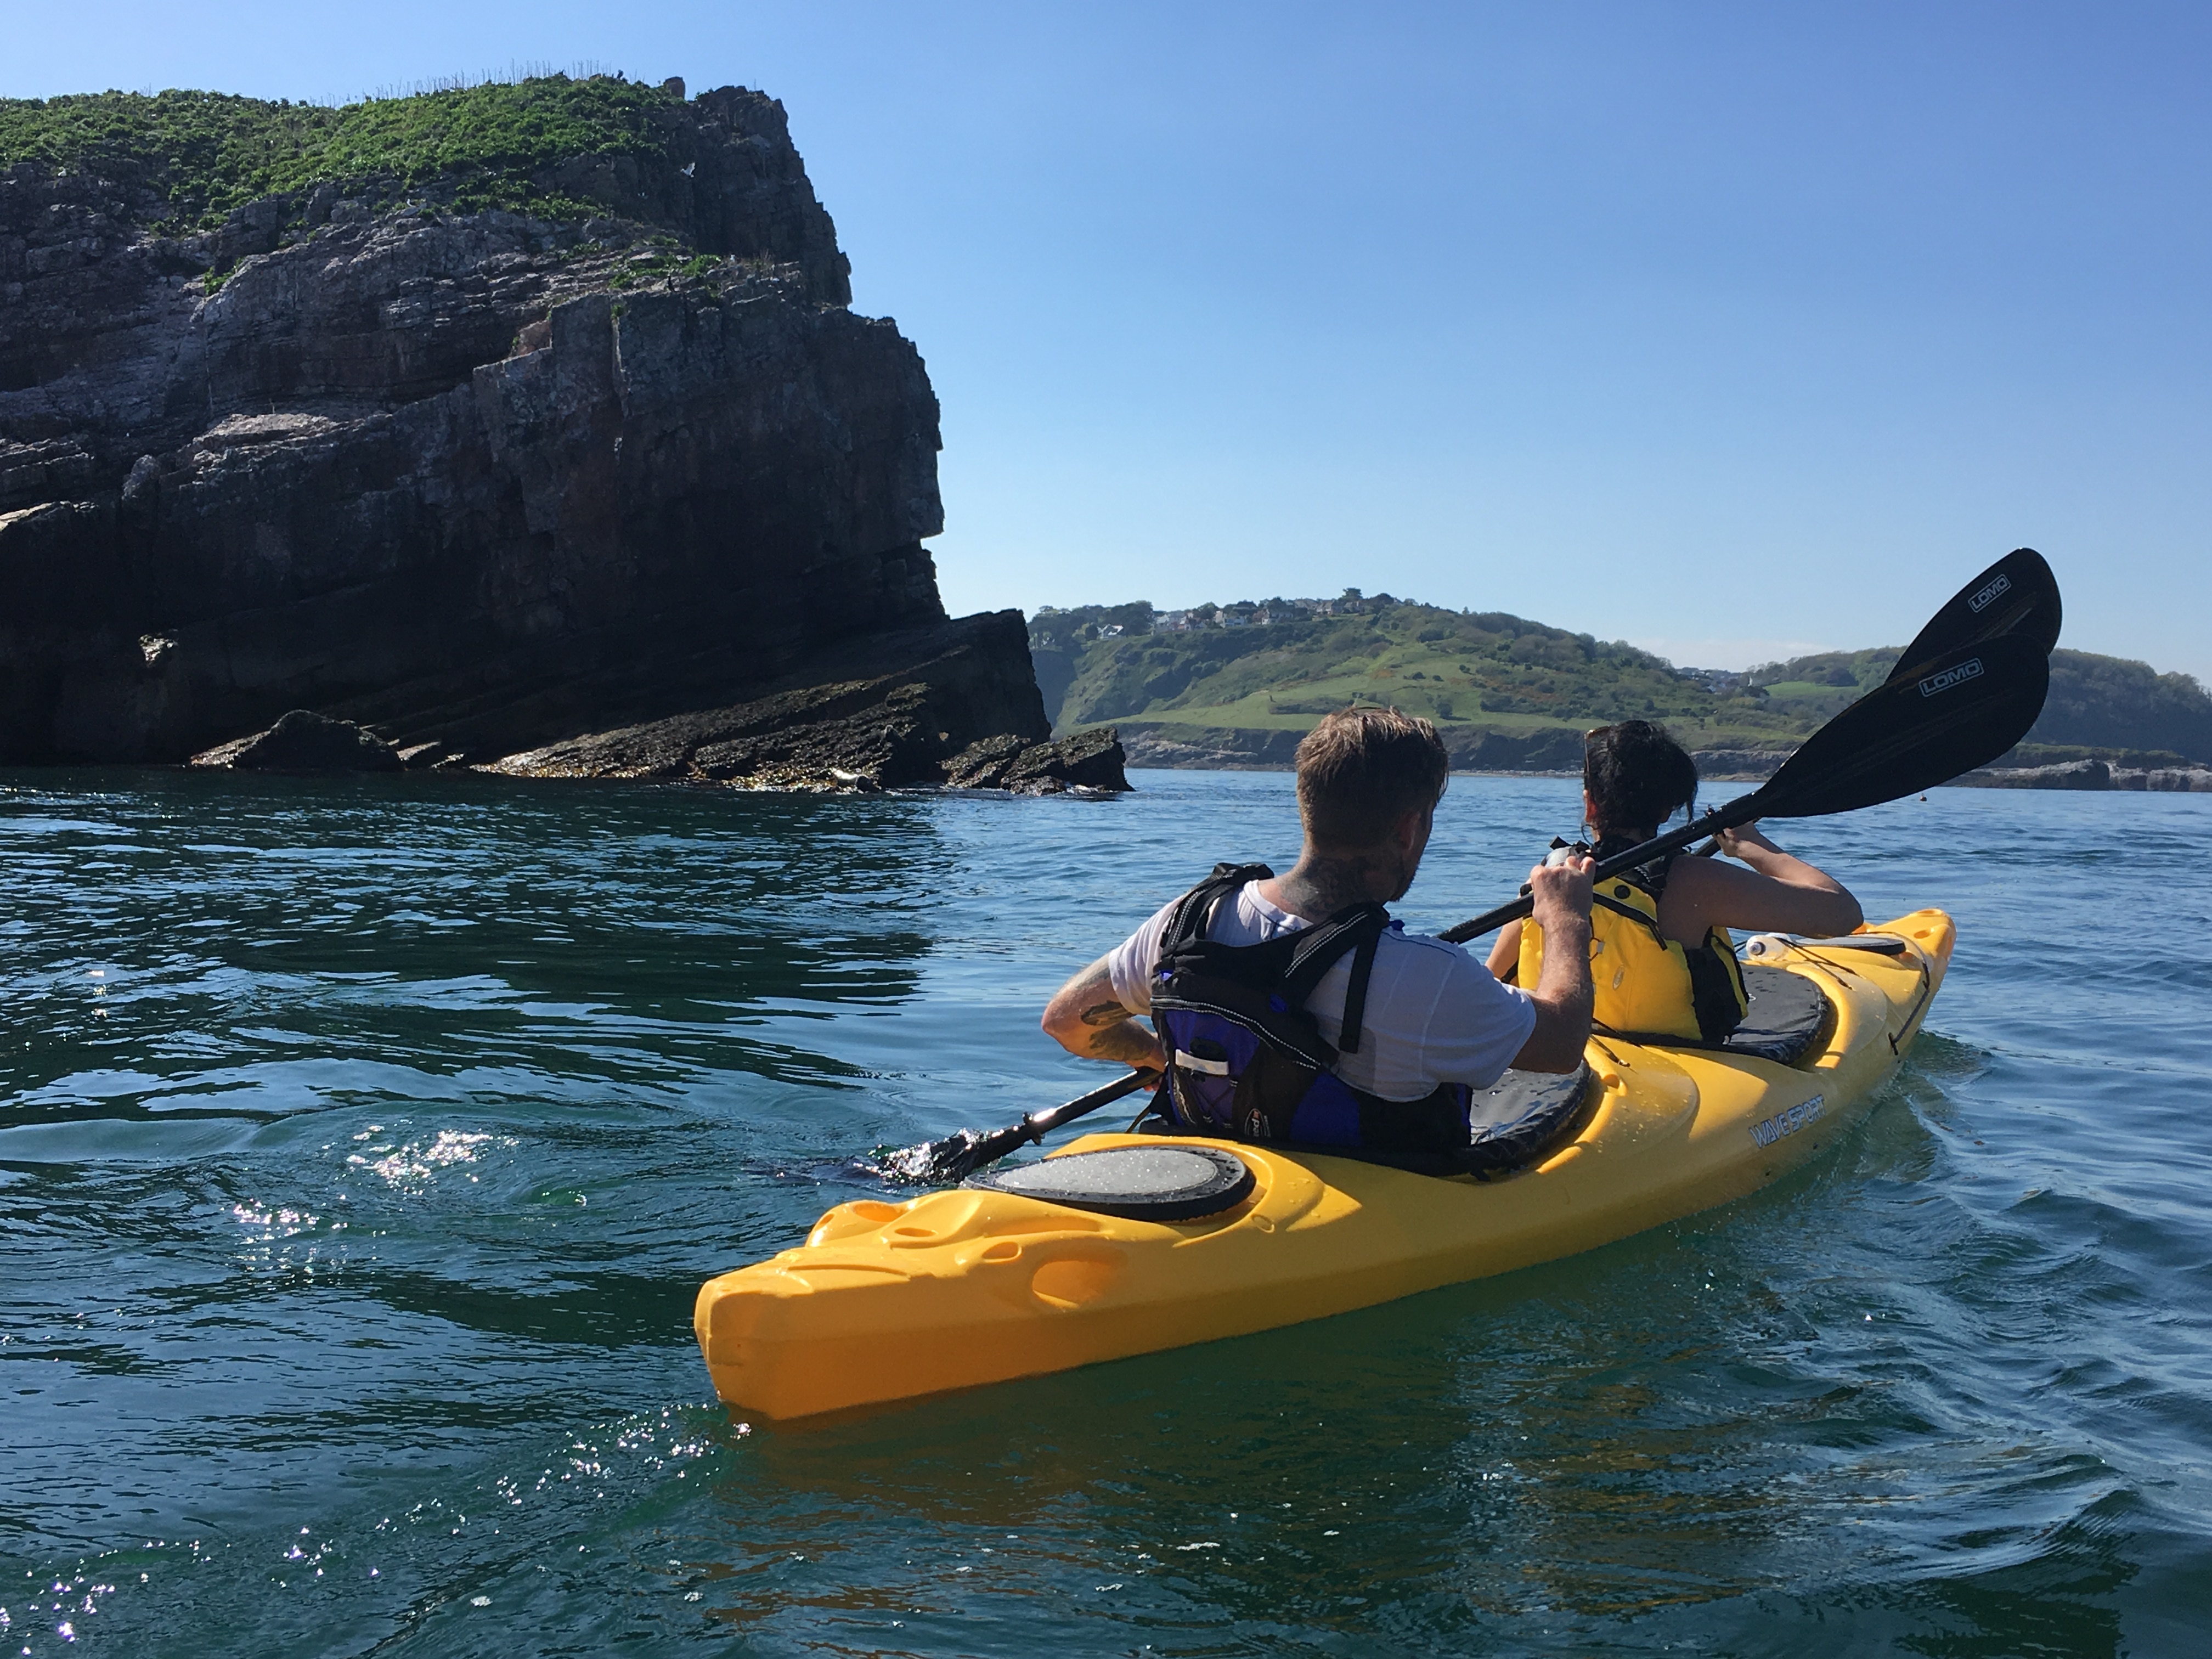 Sea Kayaking around the Orestone Rock